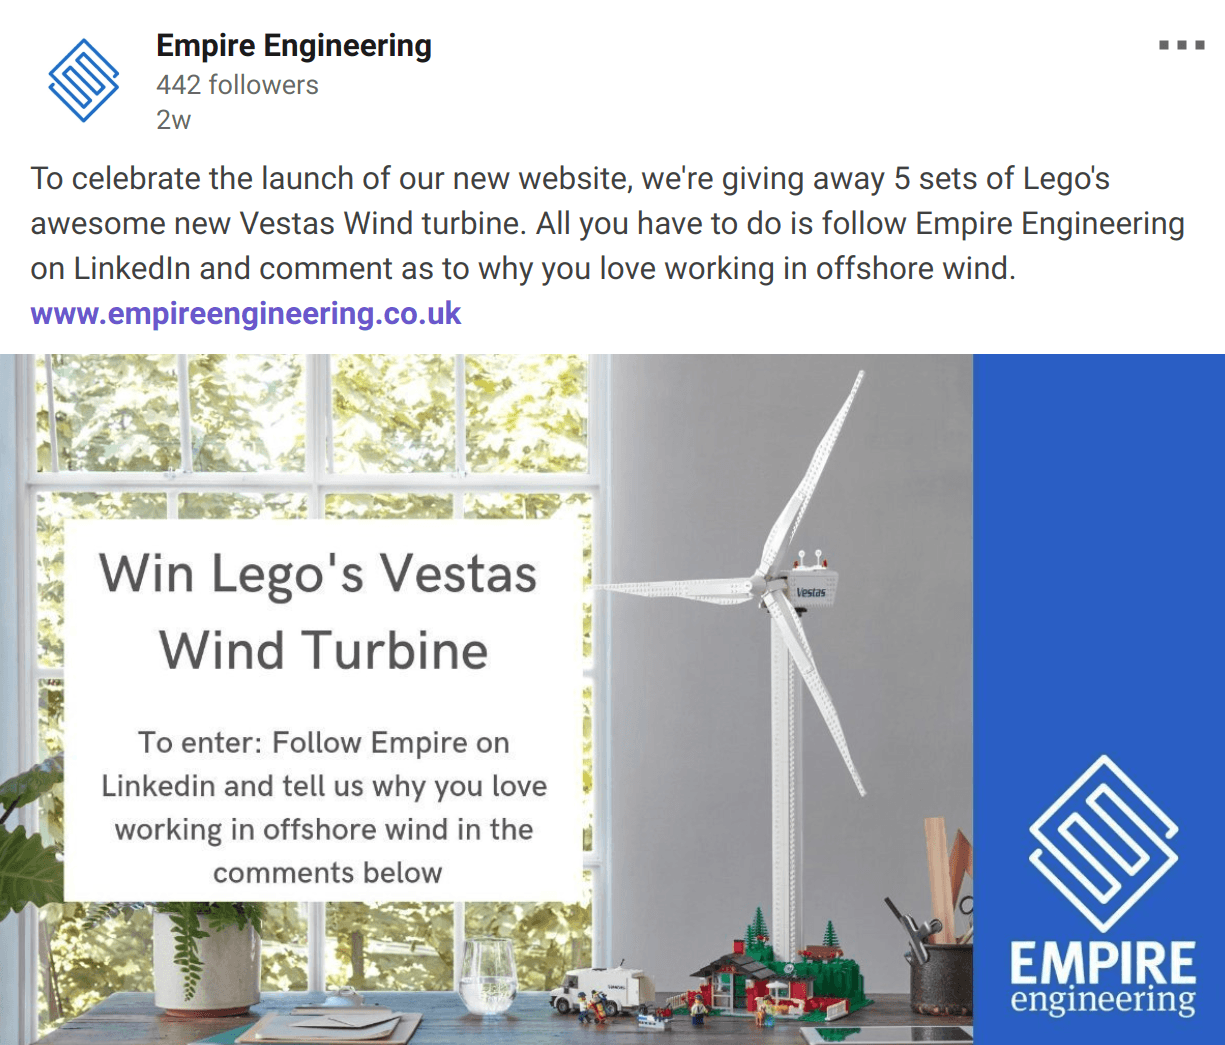 And the winners of a Lego Vestas Wind Turbine are…